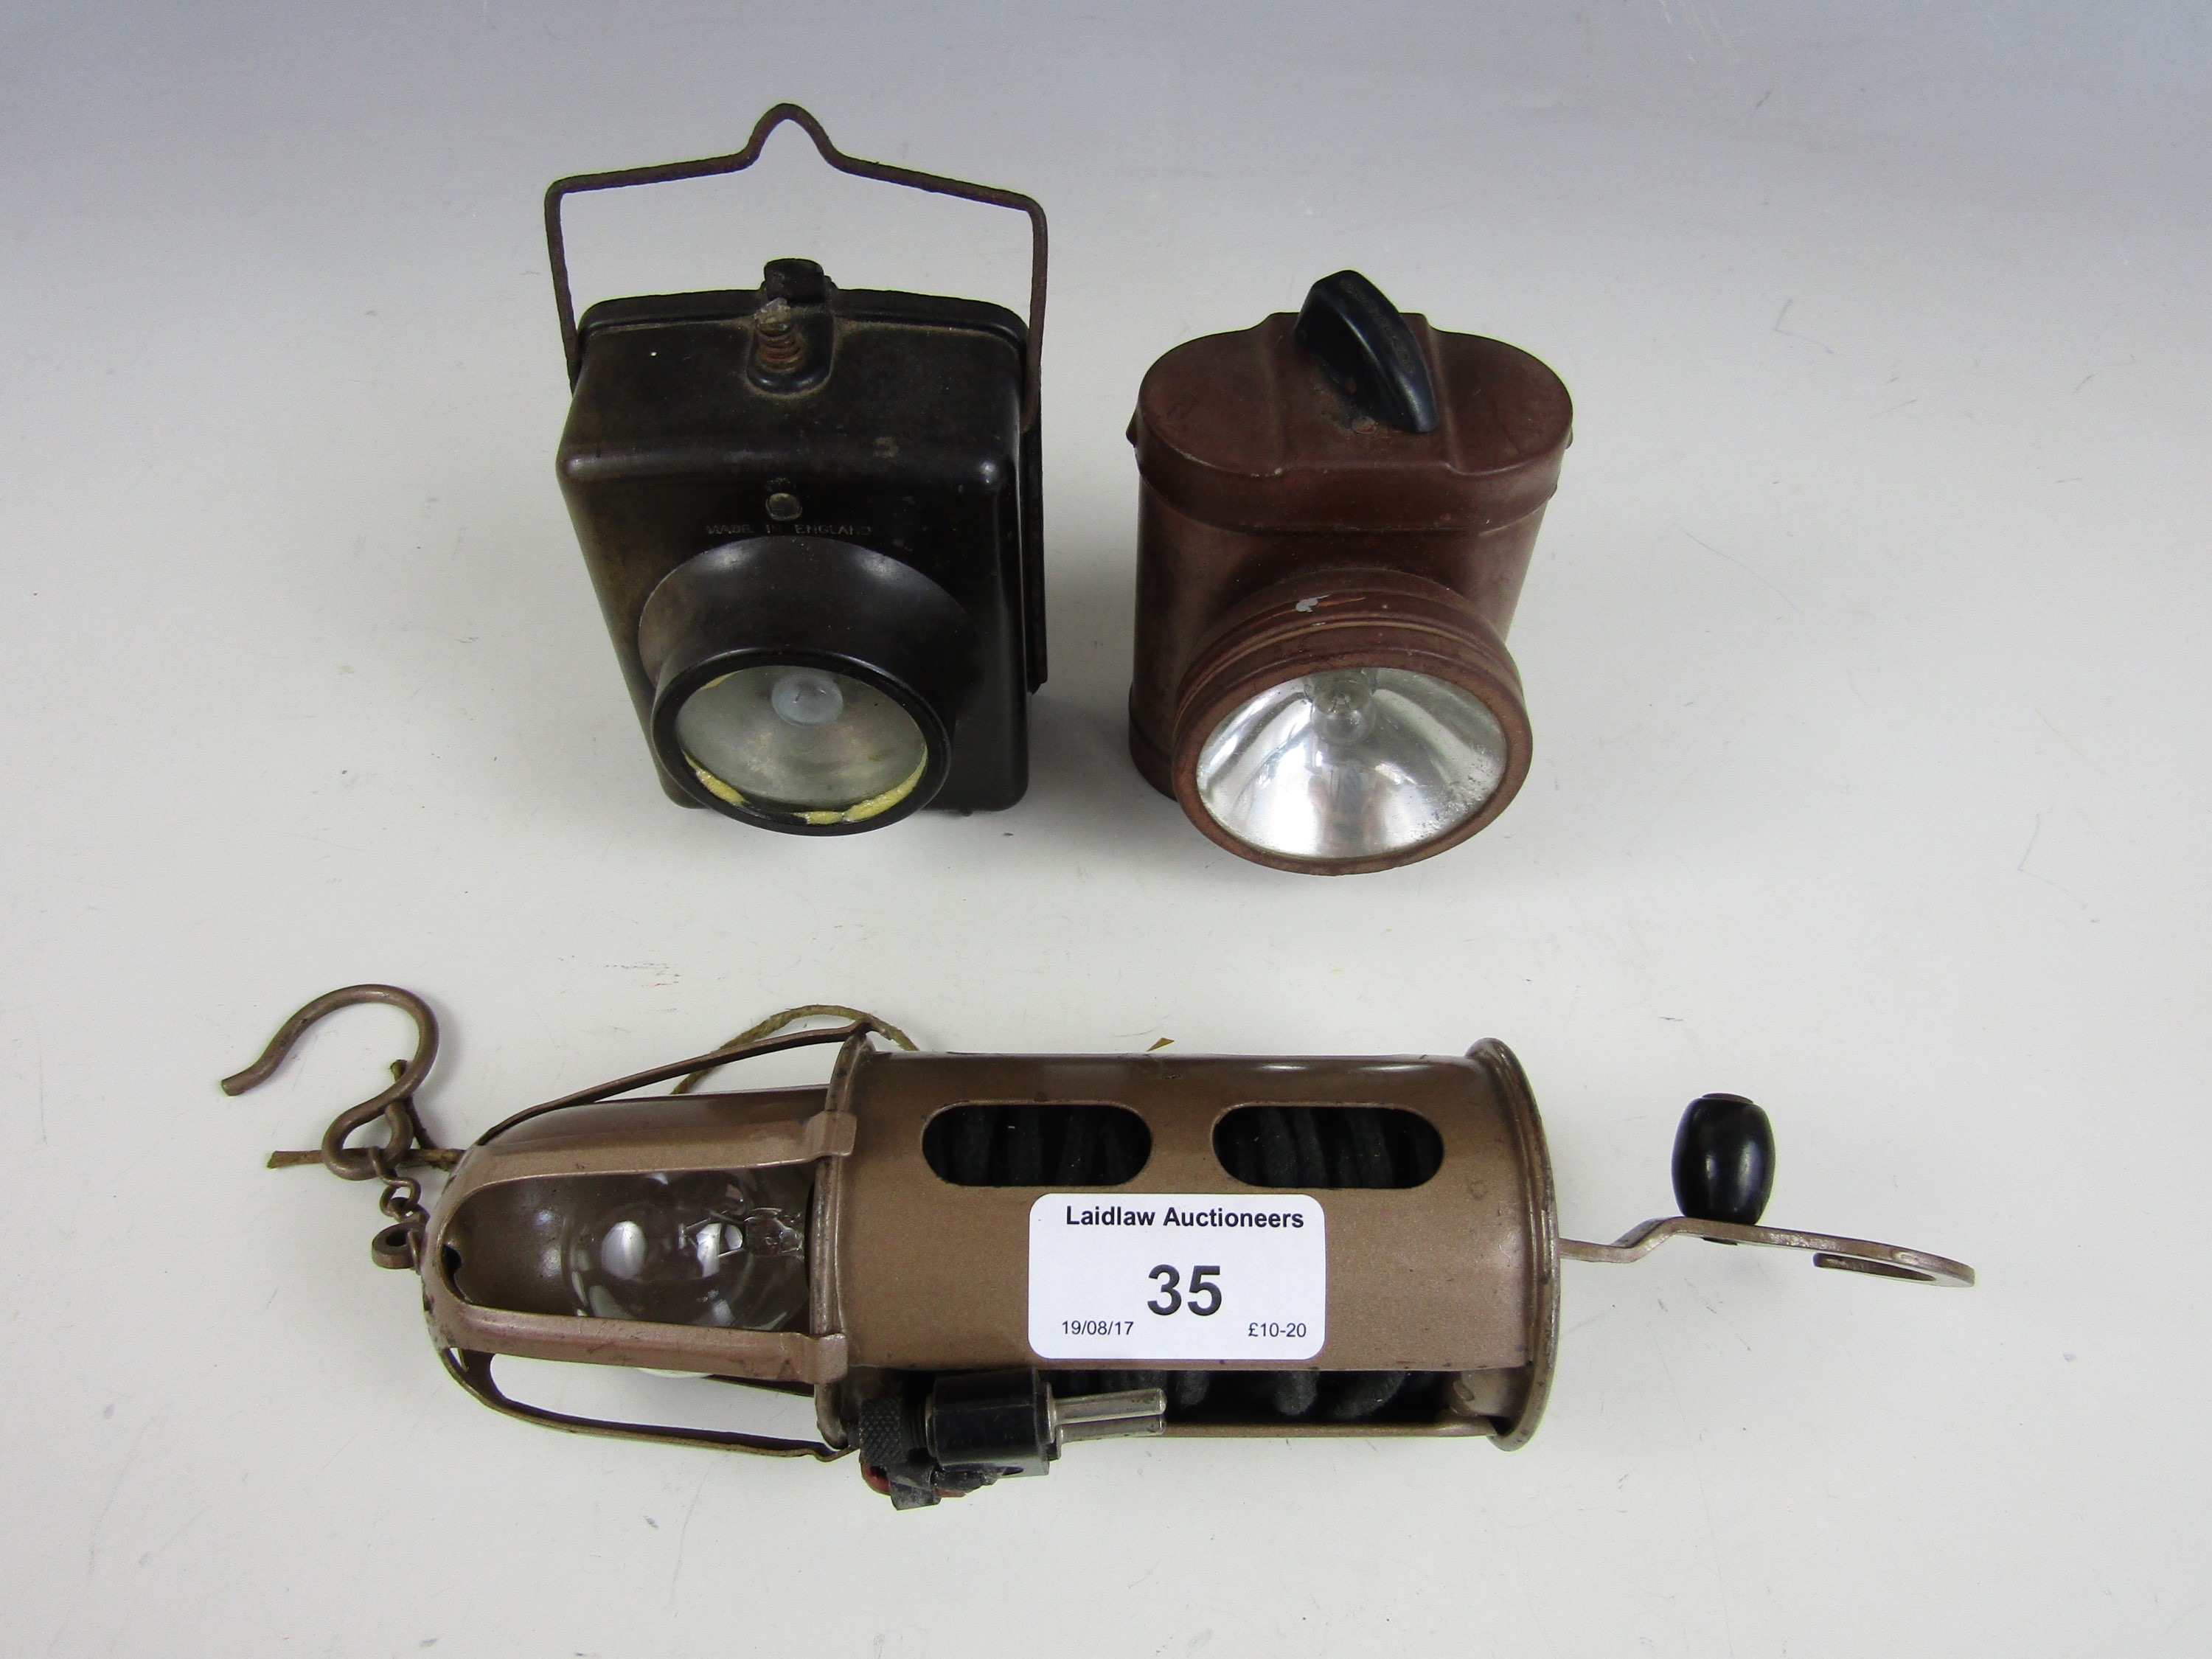 Lot 35 - An RAF / Air Ministry inspection lamp and two vintage torches